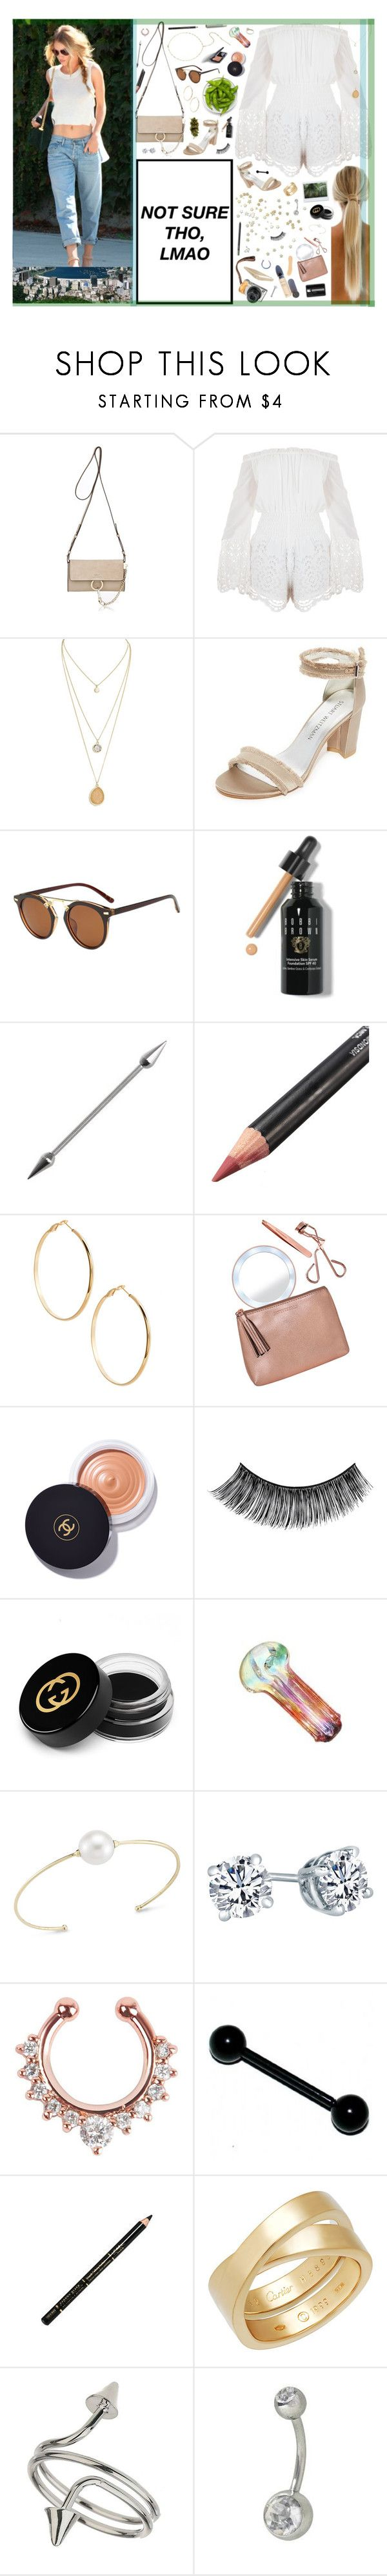 """4/25 ♡ You got that healing that I want. Just like they say it in the song, until the dawn, let's Marvin Gaye and get it on."" by xomissvolker ❤ liked on Polyvore featuring Chloé, Stuart Weitzman, Bobbi Brown Cosmetics, GUESS by Marciano, Tweezerman, Chanel, eylure, Gucci, mizuki and ULTA"